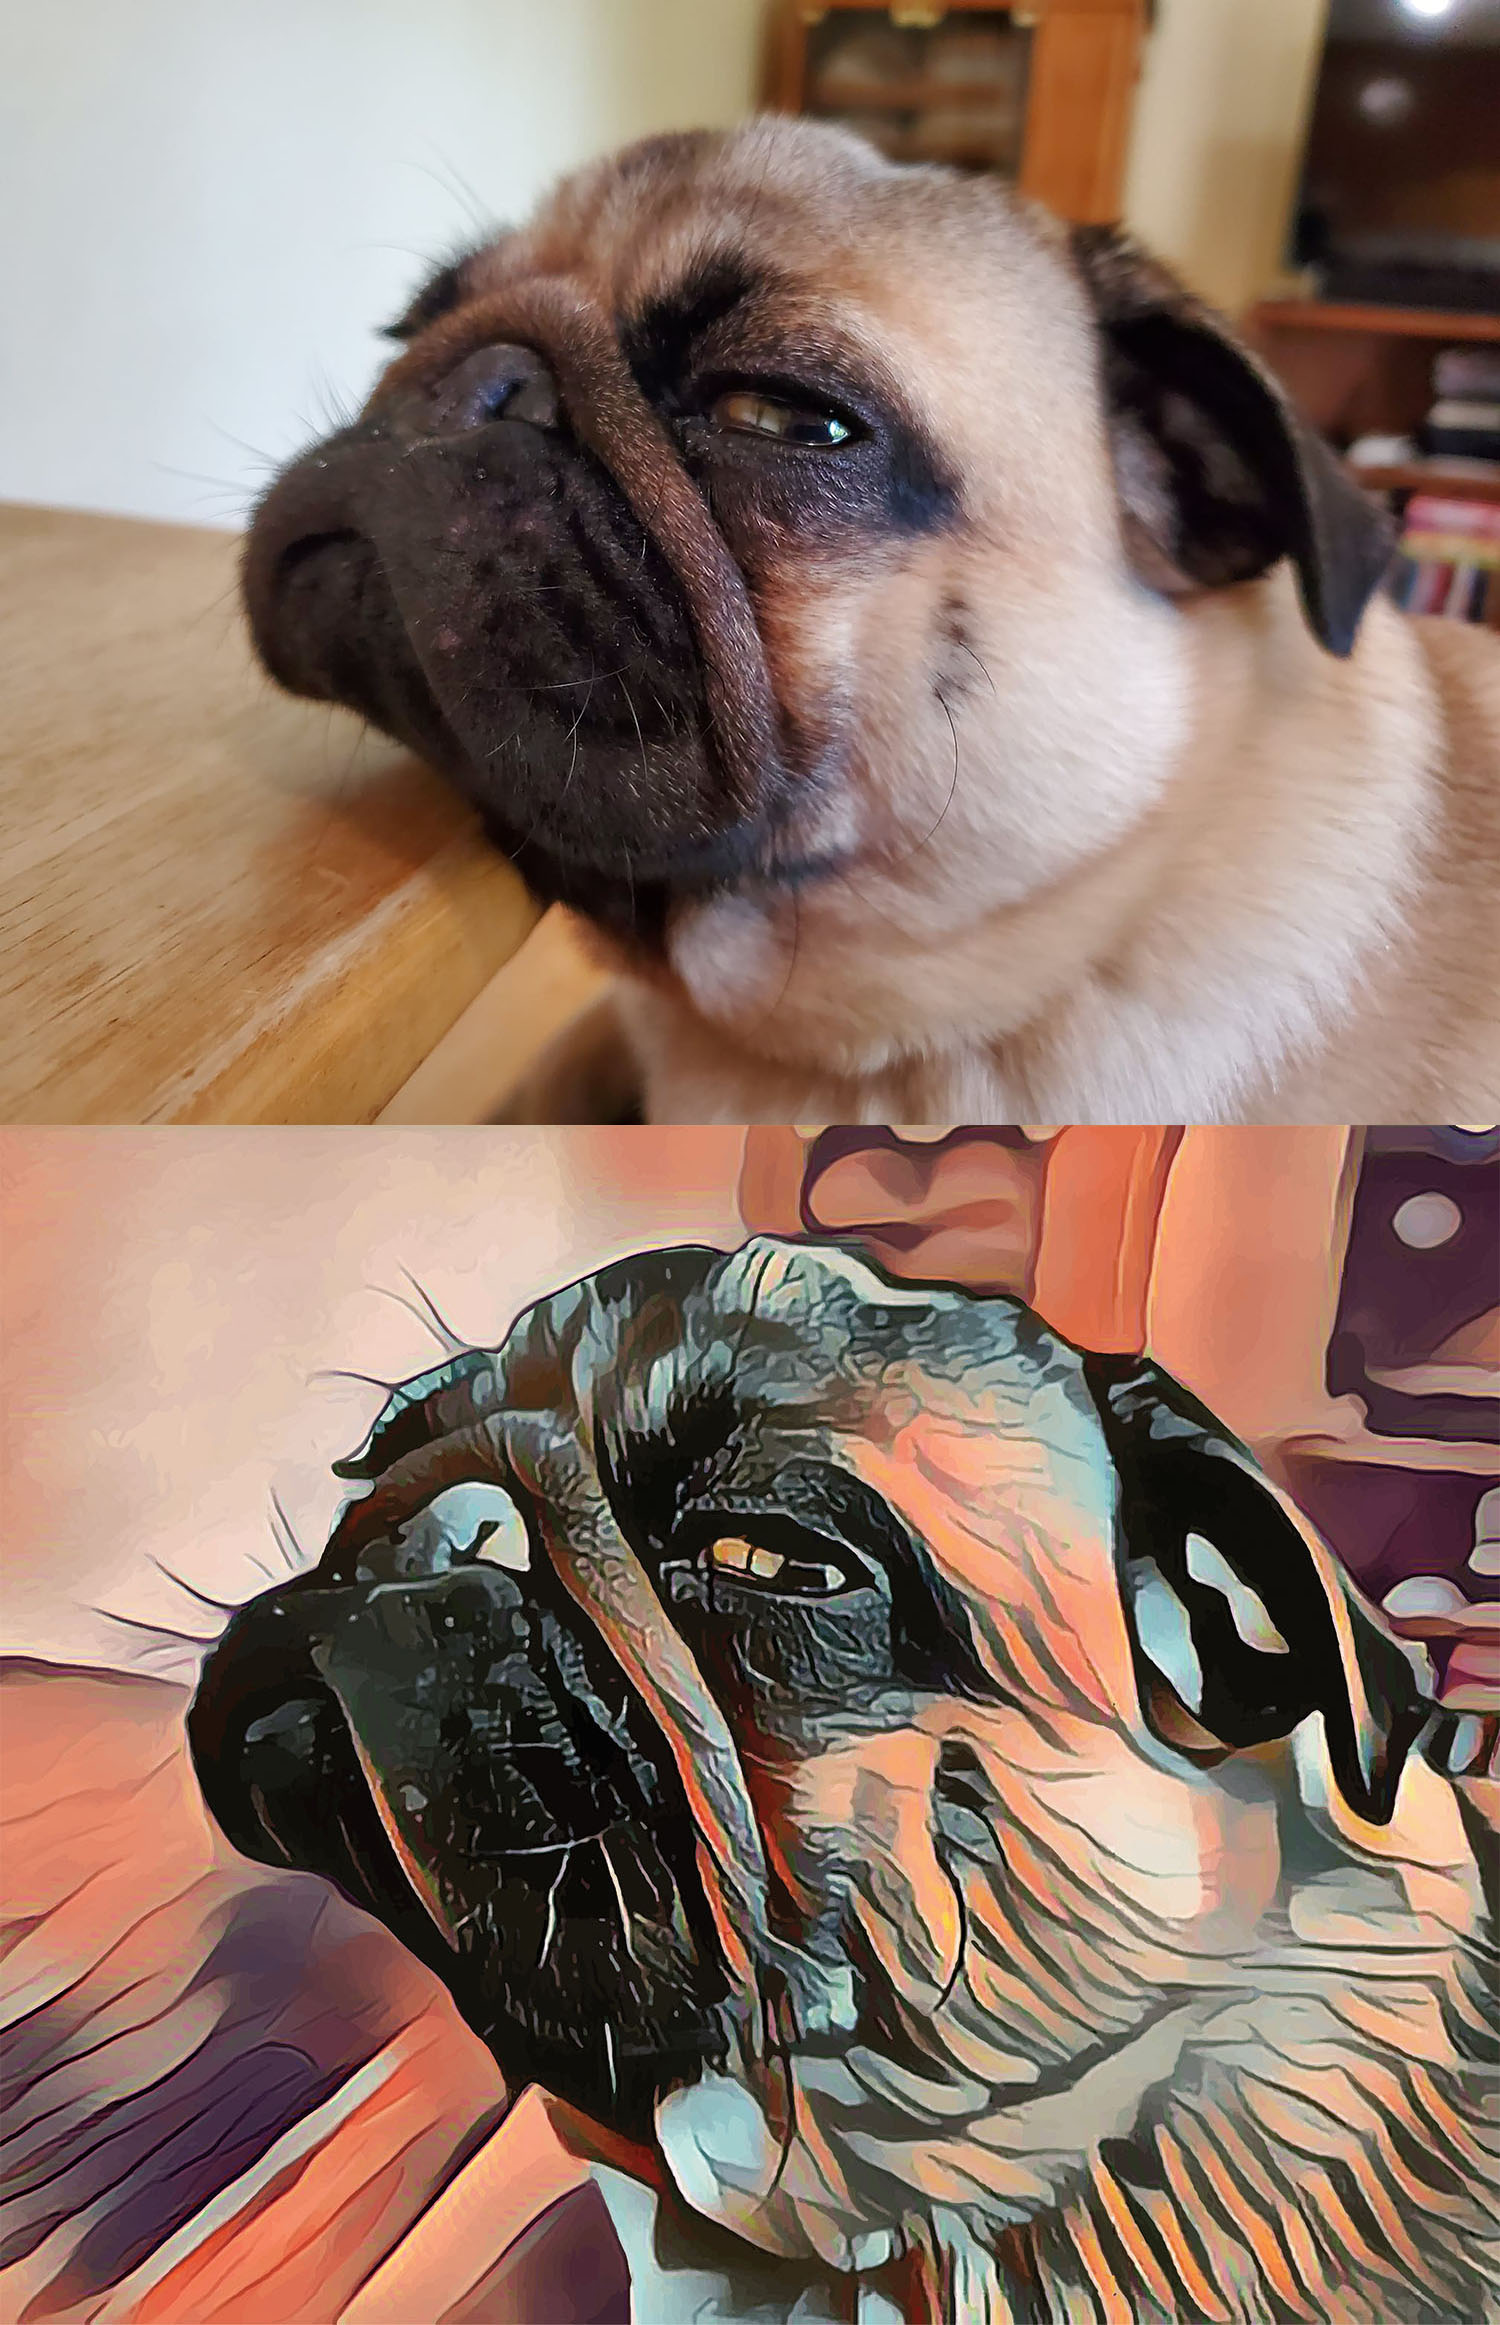 Before and after stylized image of a pug's face